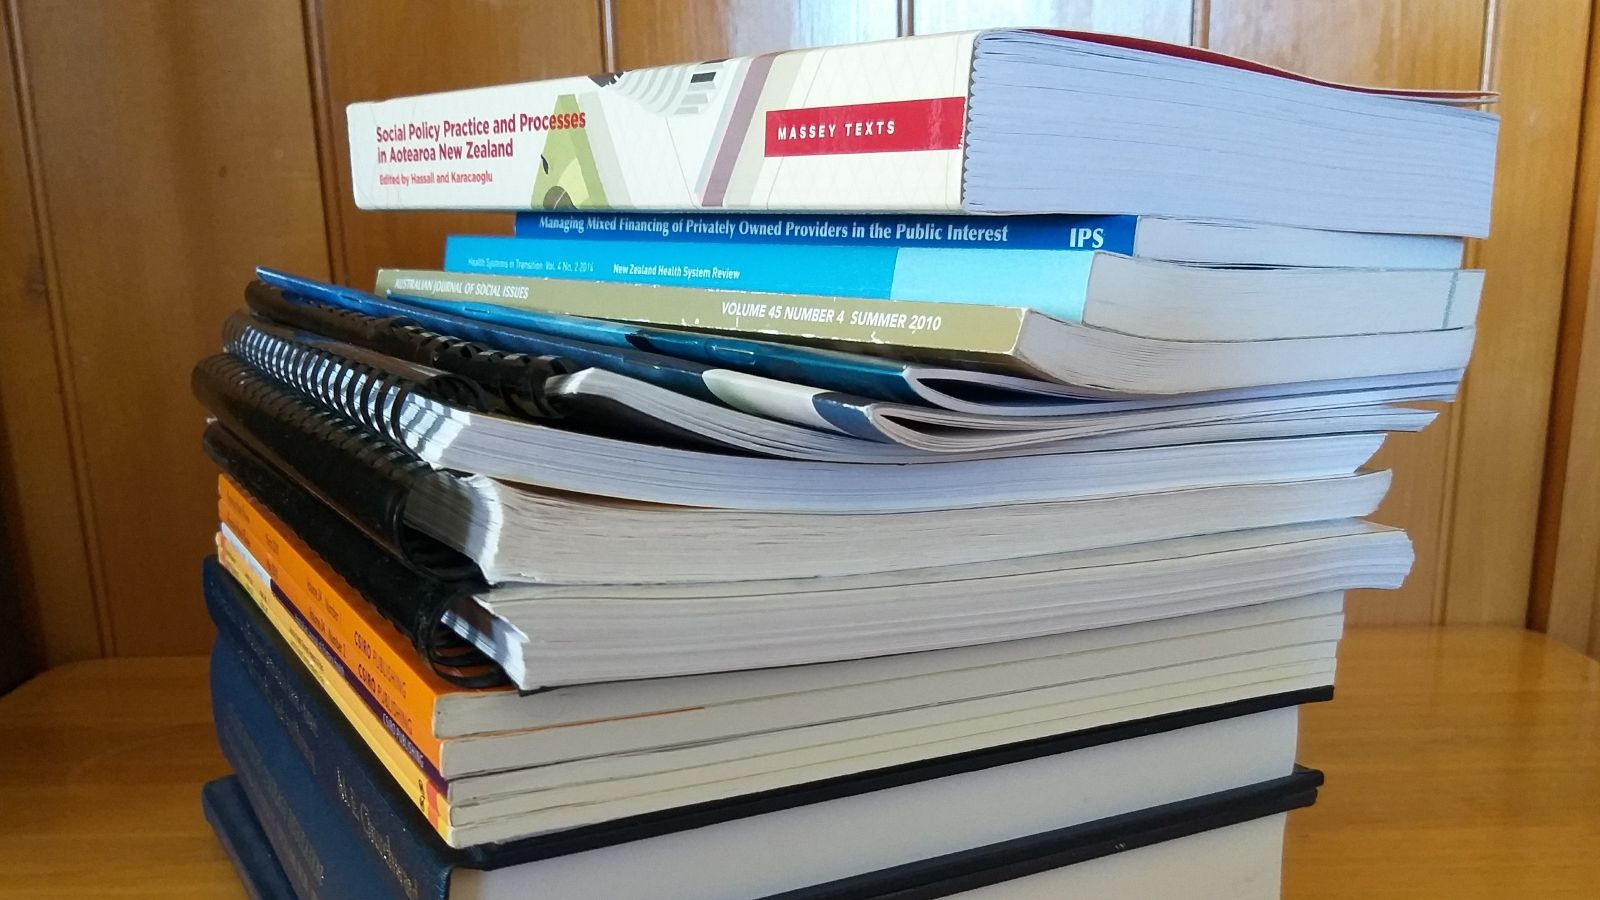 Picture of stack of publications